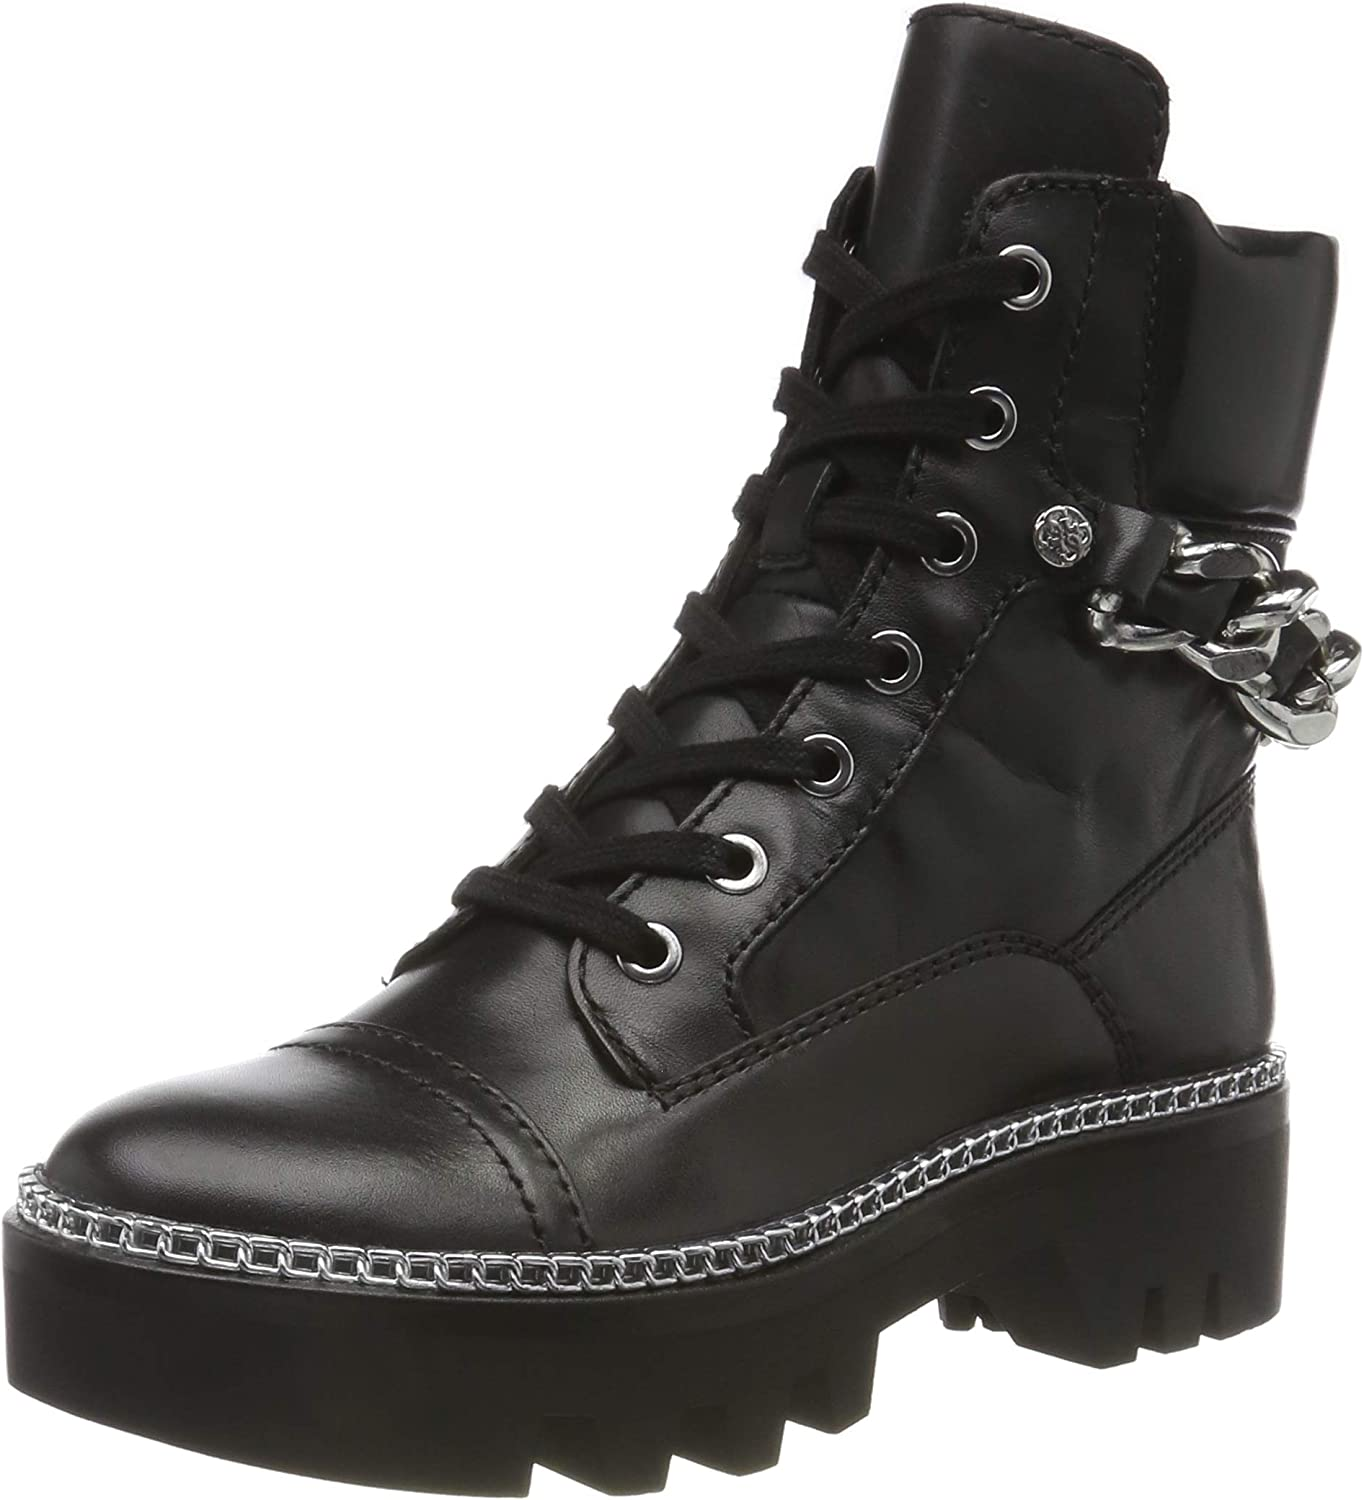 Guess Domain/Stivaletto (Bootie)/Lea, Botas Militares para Mujer